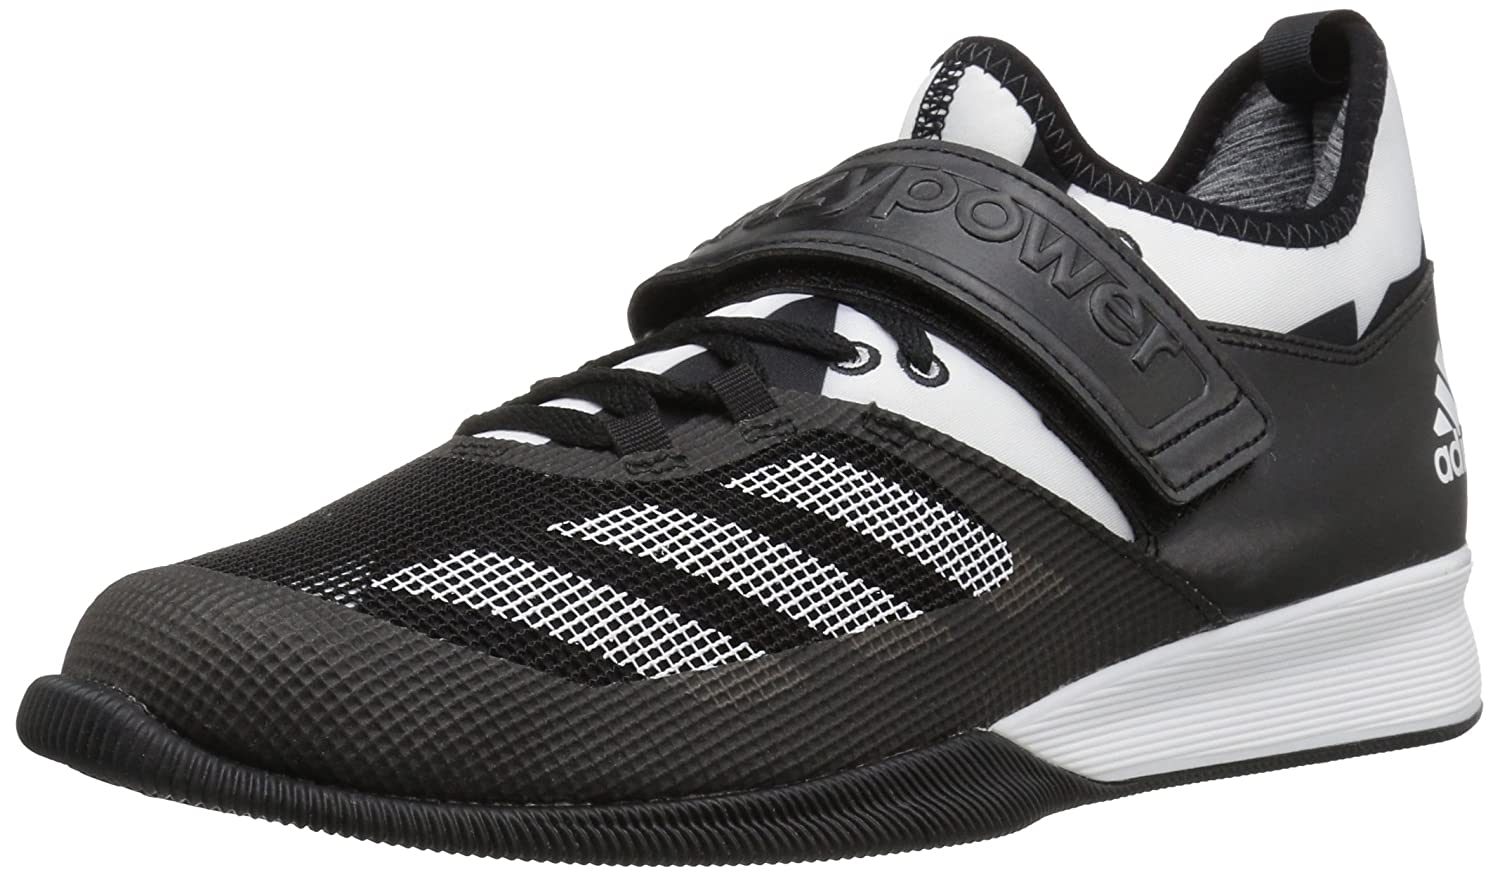 Adidas hombre 's Crazy Power Cross trainer zapatos b01lyn0irz 10 M US